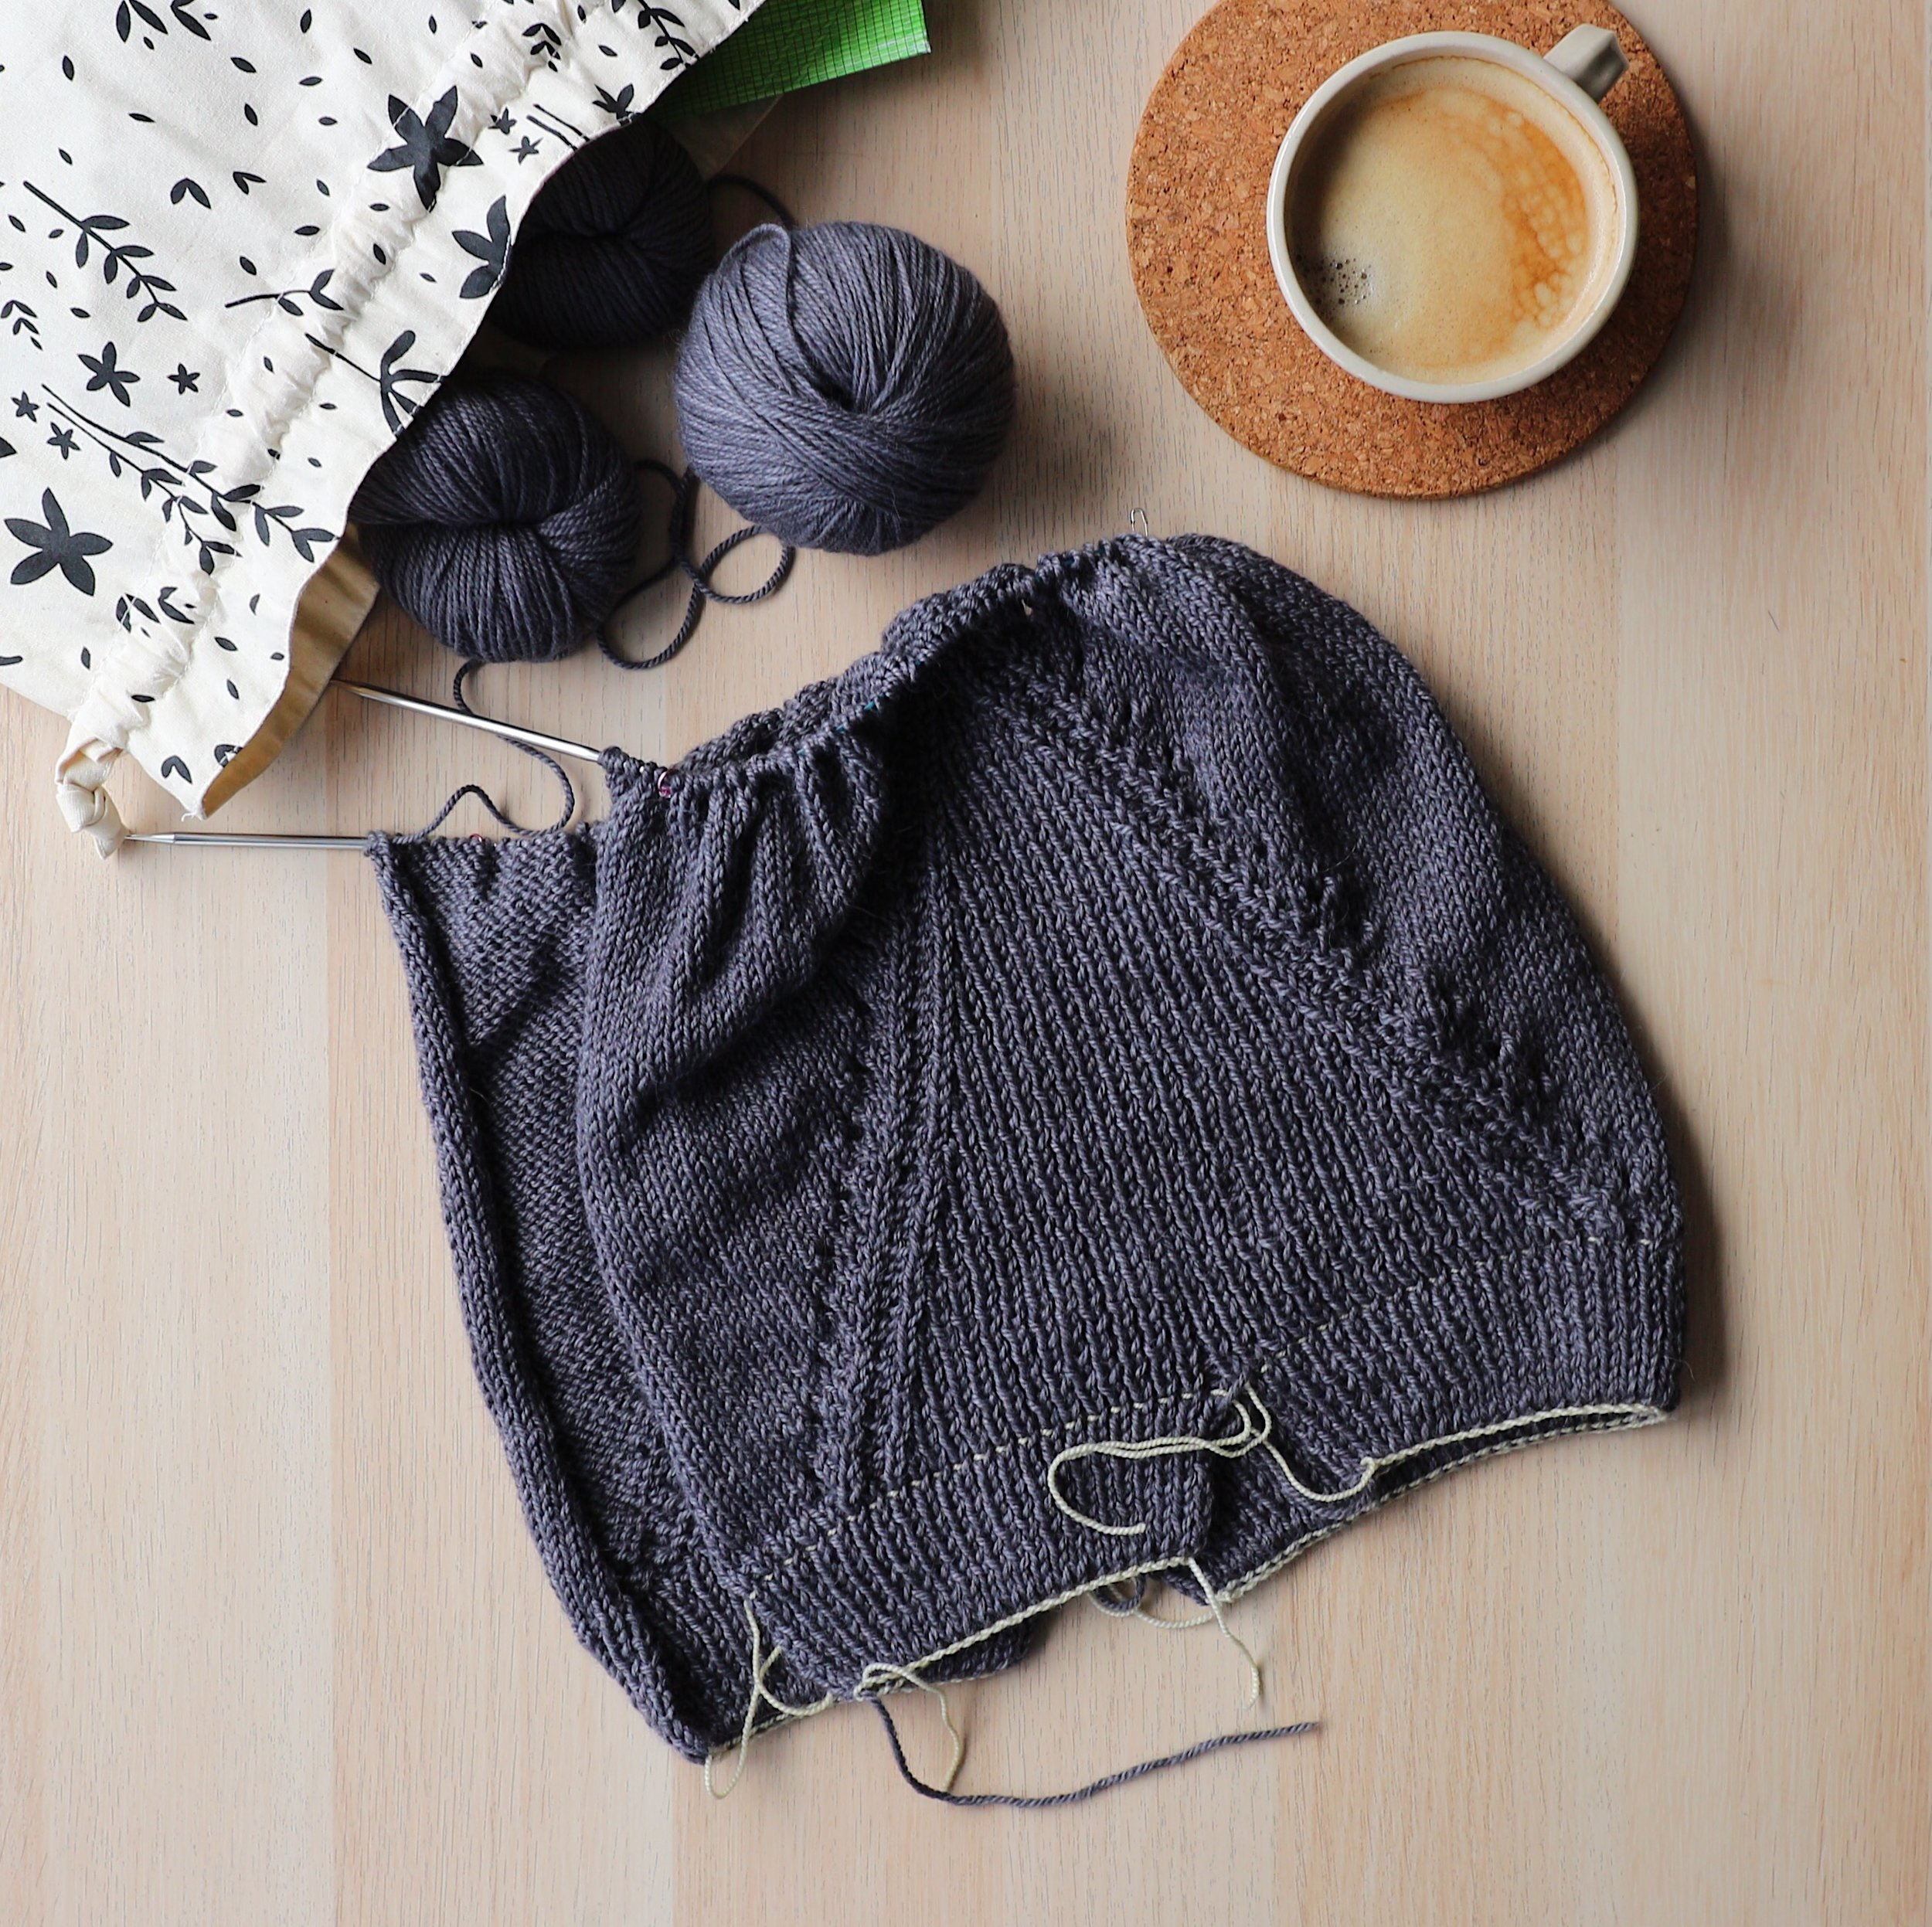 Truss Cardigan knitting project